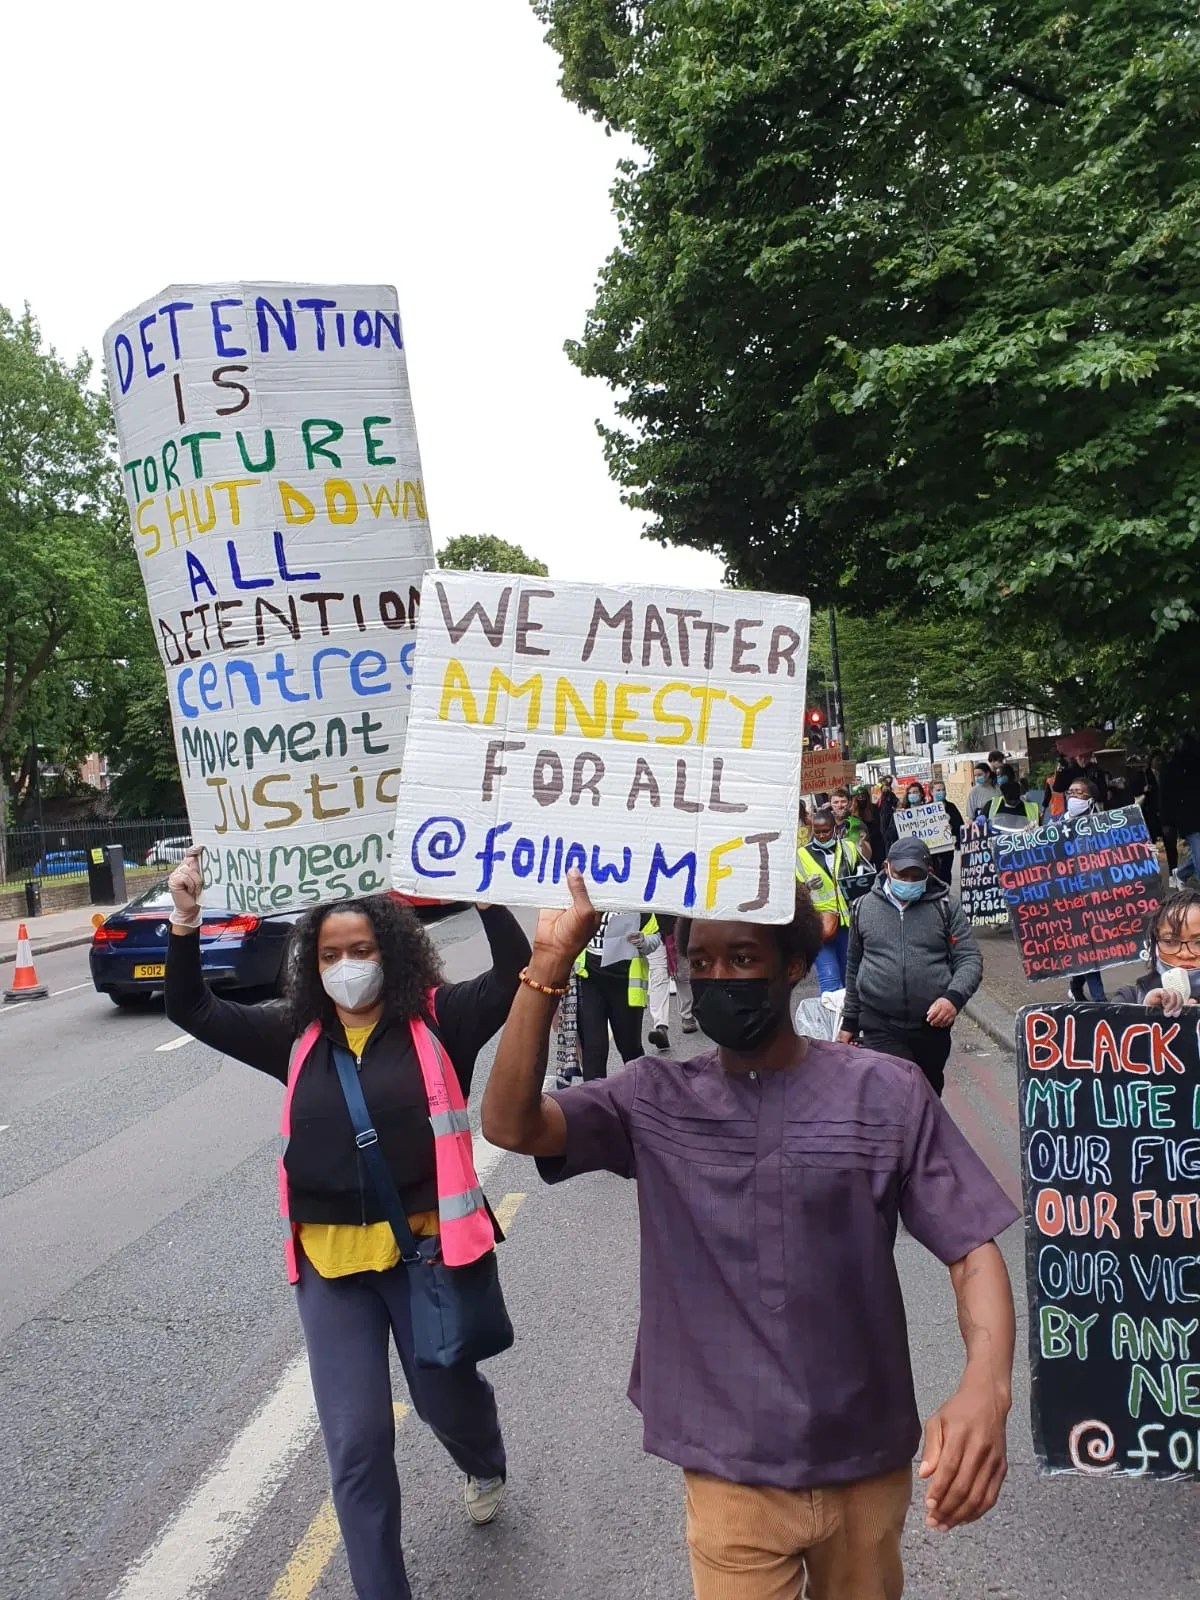 photo/video report from MFJs immigrant rights march 4 July 2020